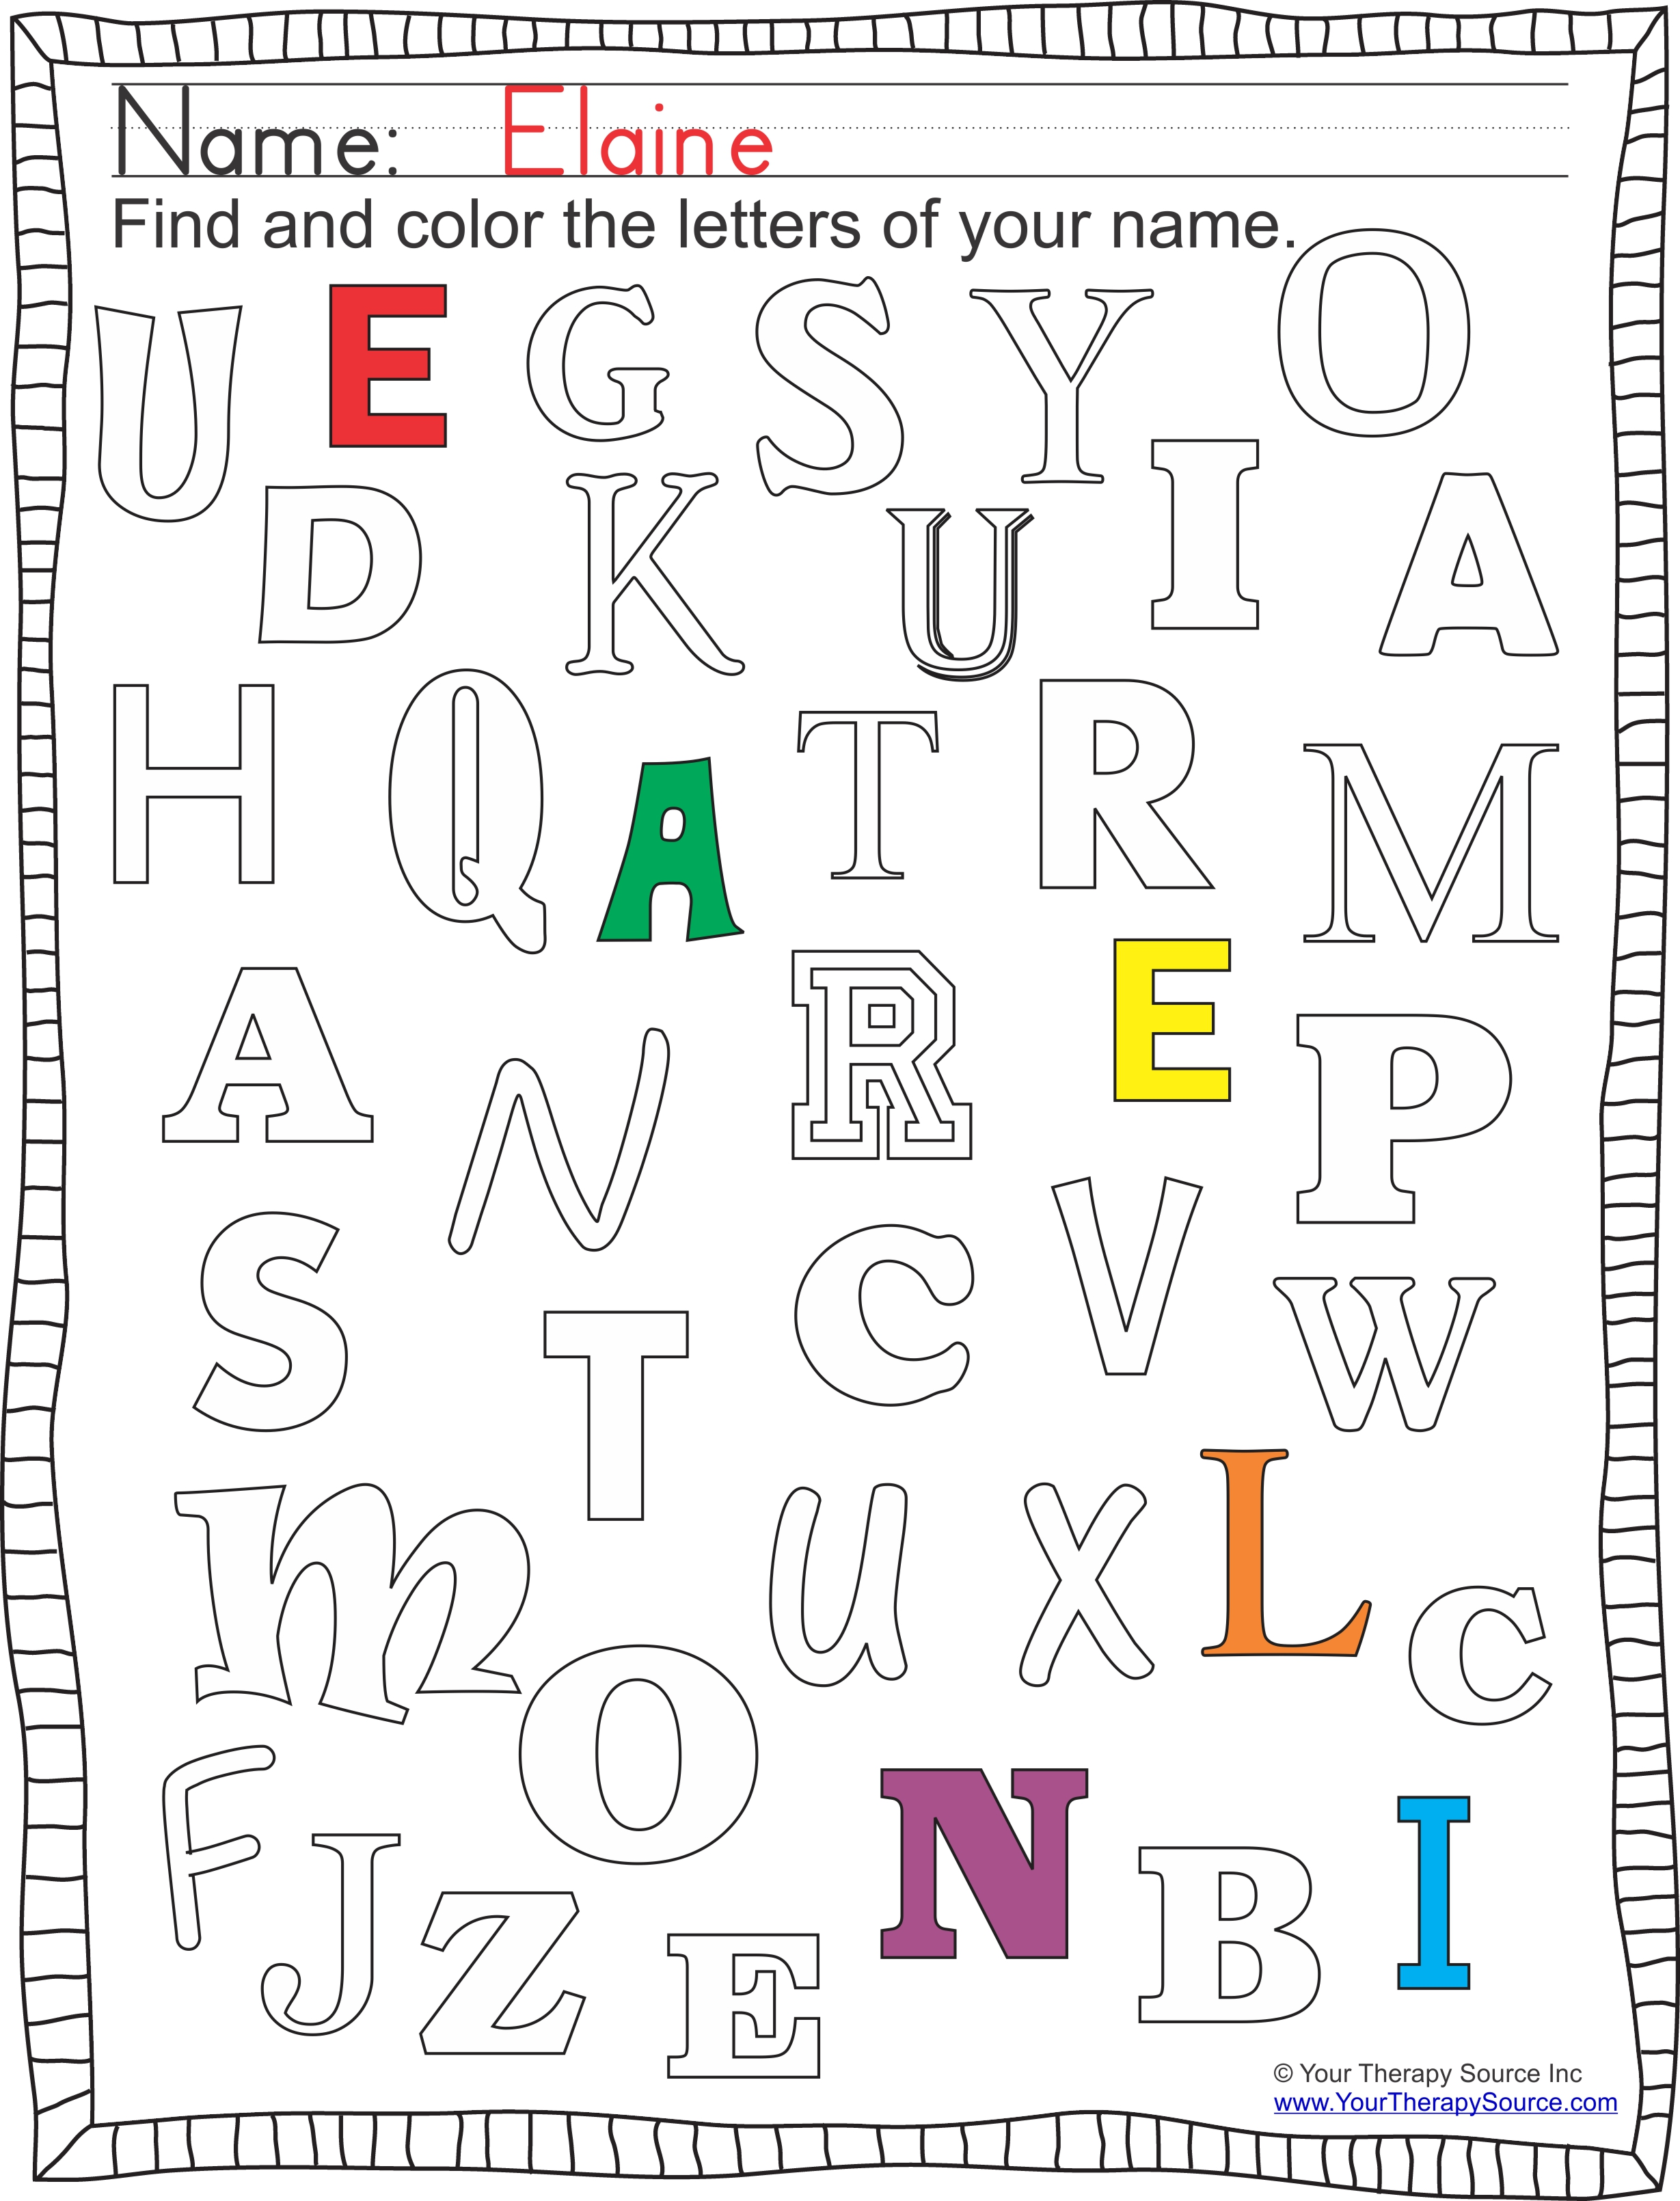 FInd and Color Letters of Your Name from https://yourtherapysource.com/freefindname.html